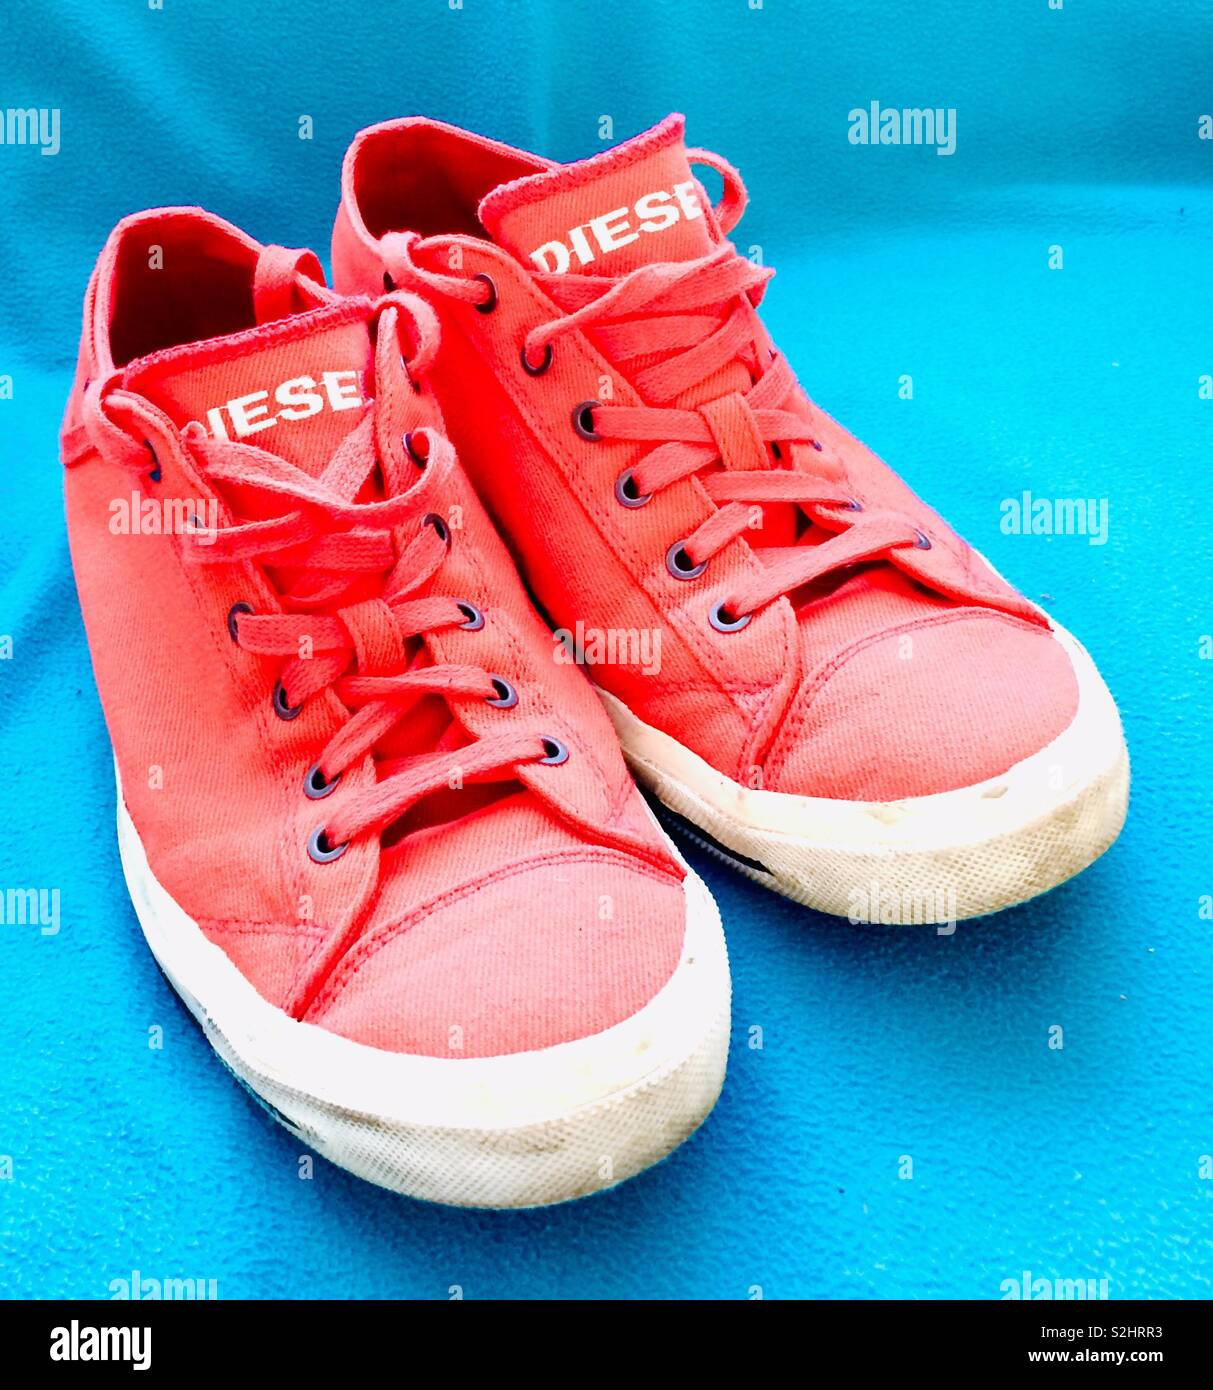 Bright canvas shoes. Diesel brand